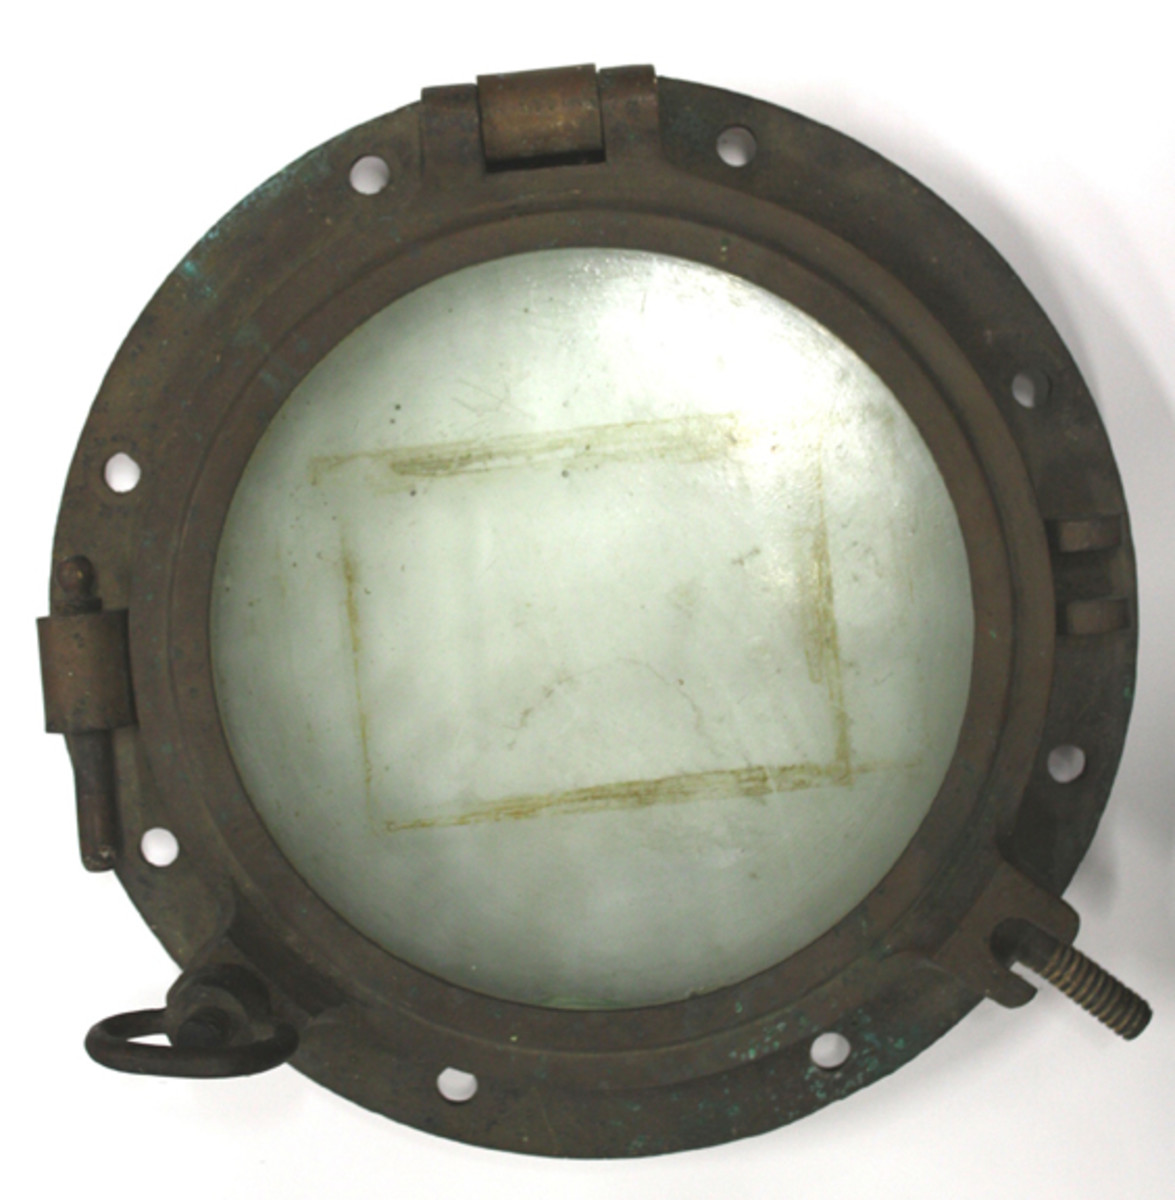 Brass and glass porthole from the S.M.S. Cormoran.